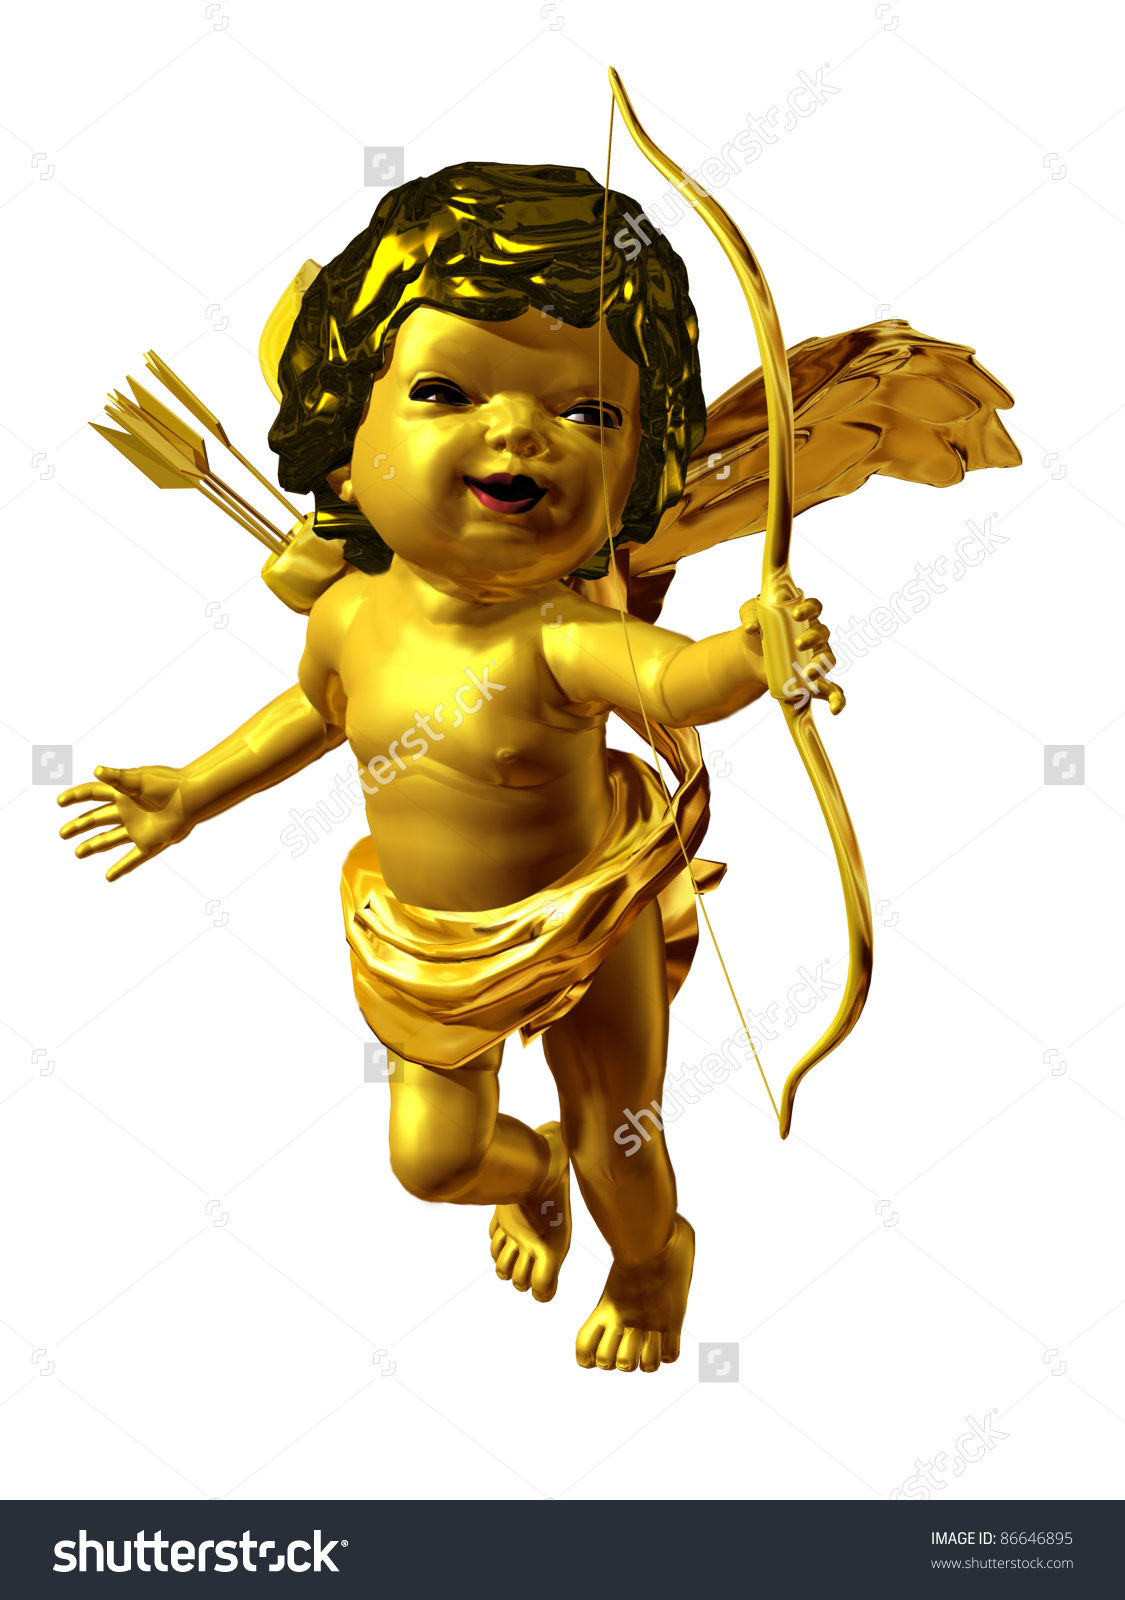 Amor Putto Gold Stock Illustration 86646895.